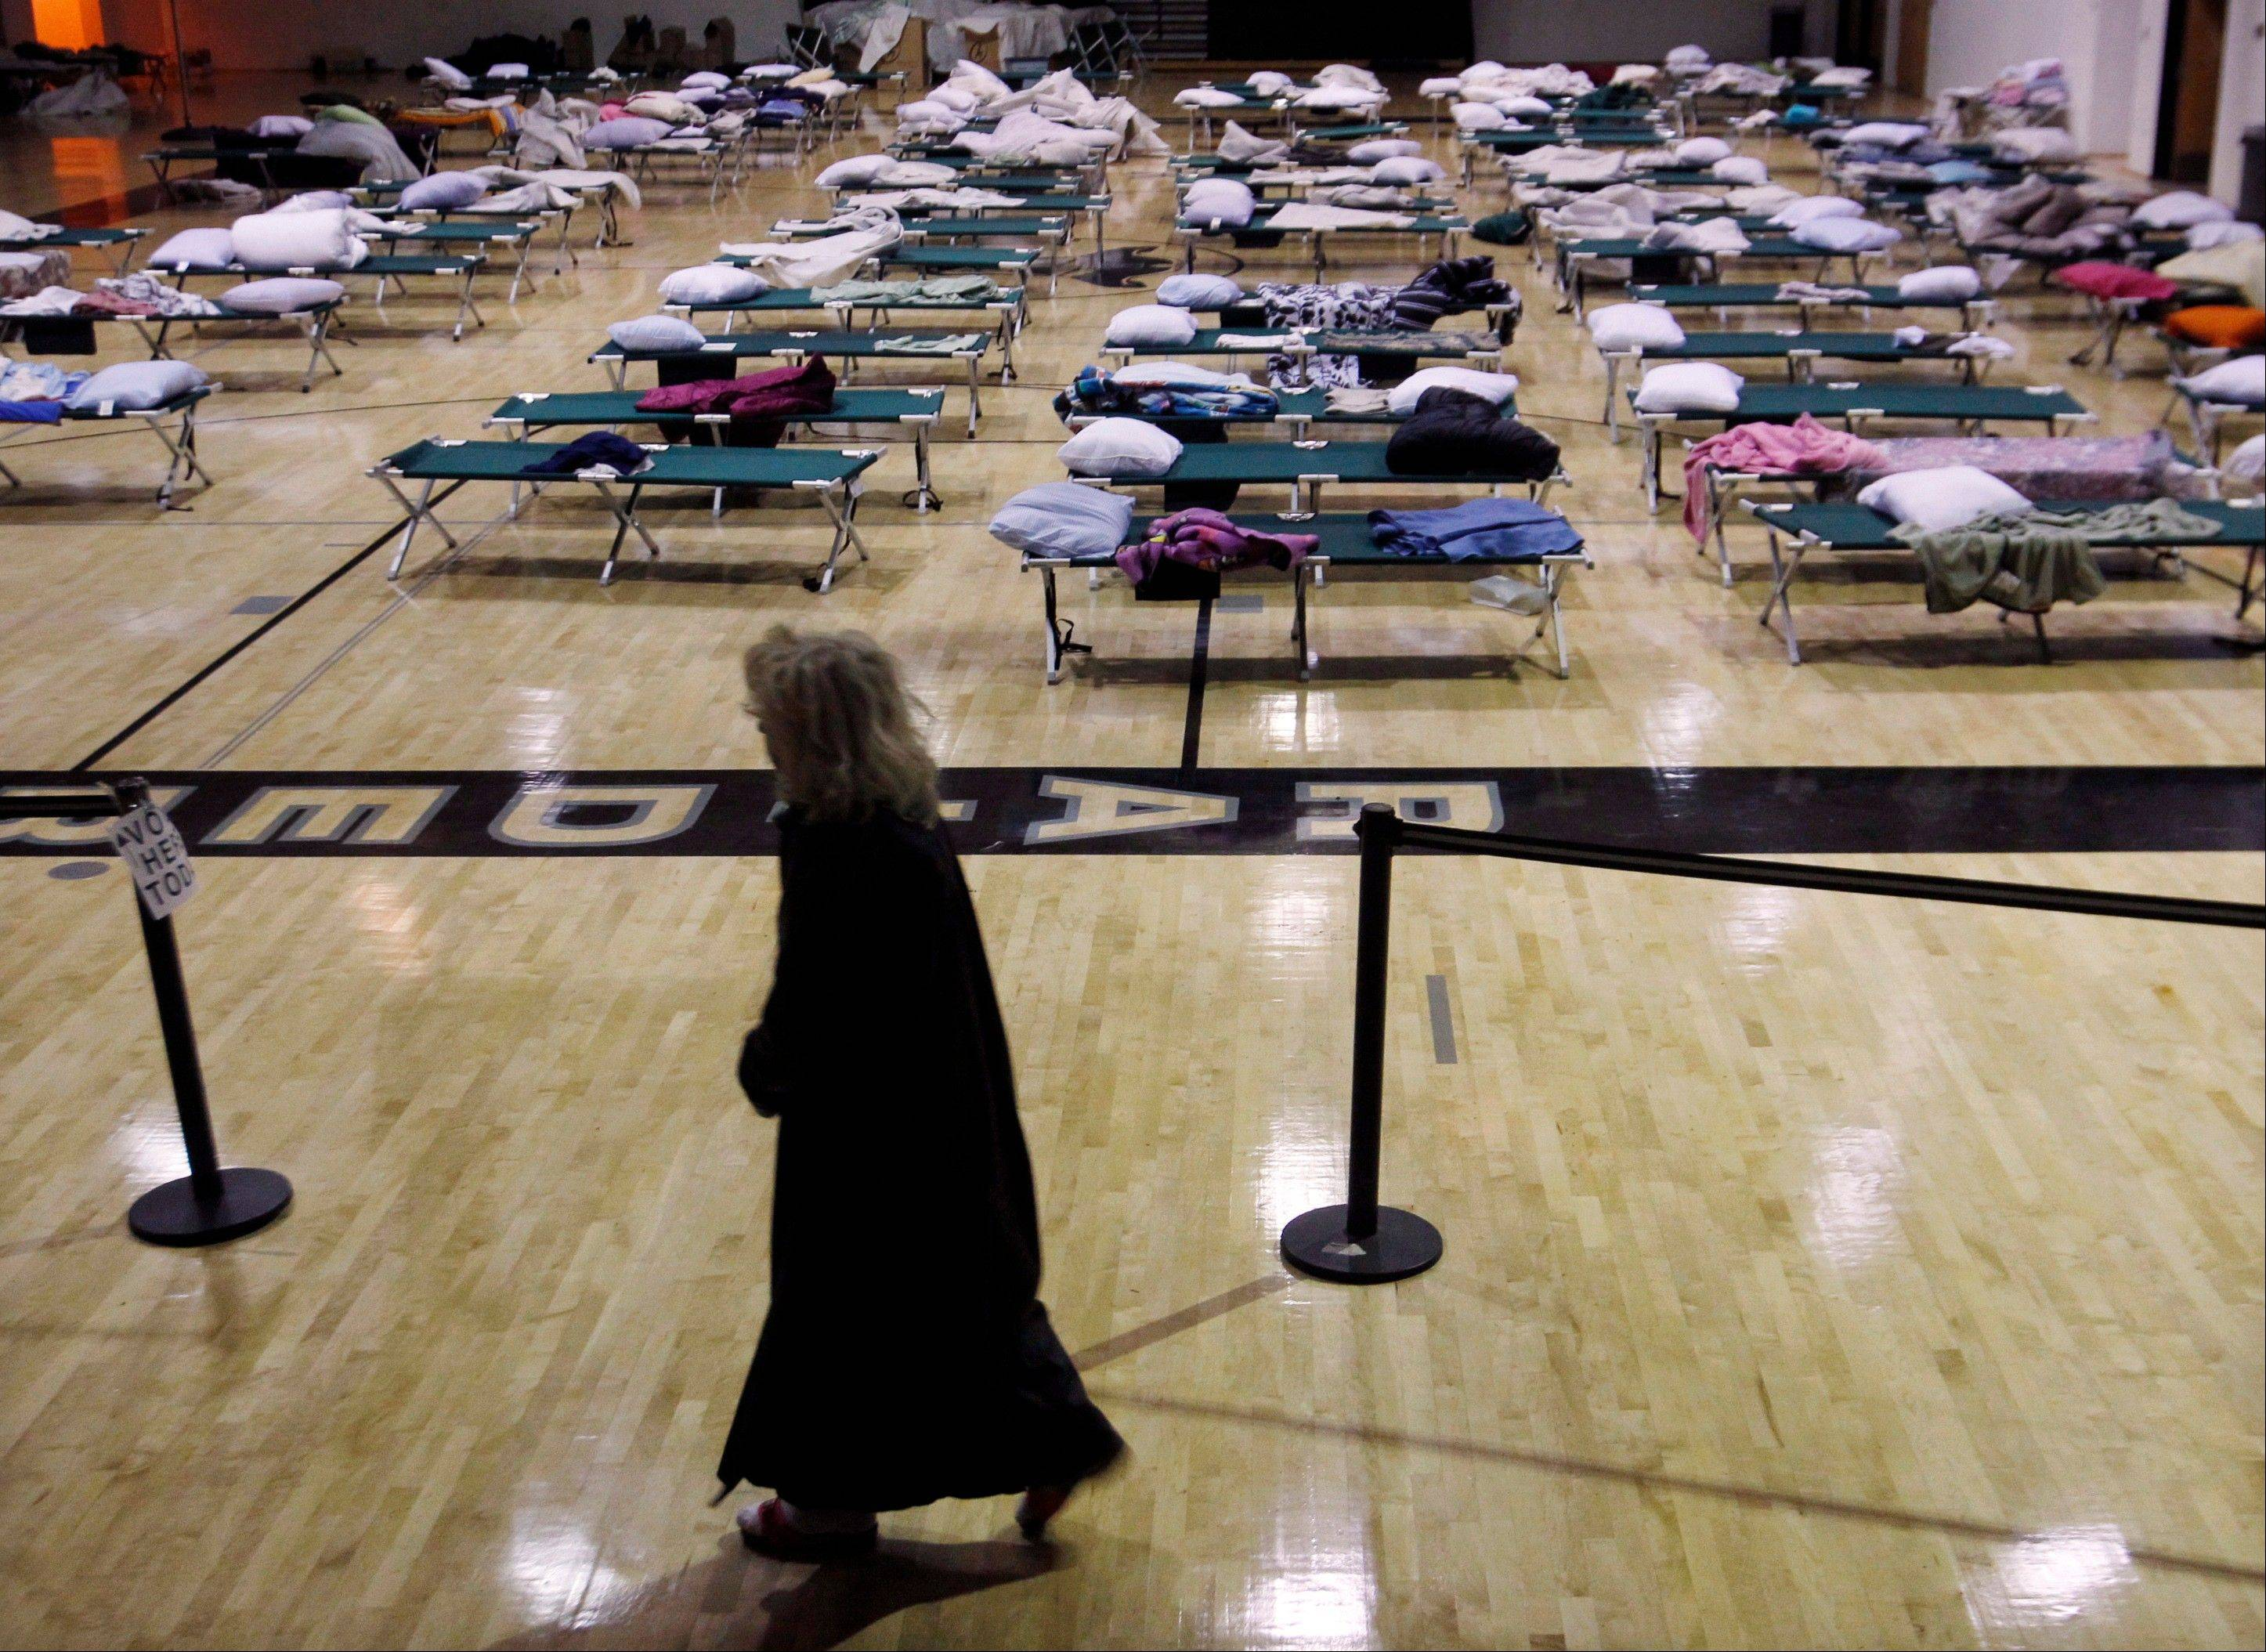 A person walks through a makeshift shelter in a gymnasium at Toms River East High School as they arrive to vote Tuesday, Nov. 6, 2012, in Toms River, N.J. N.J. Voter turnout was heavy in several storm-ravaged Jersey Shore towns, with many voters expressing relief and even elation at being able to vote at all, considering the devastation.